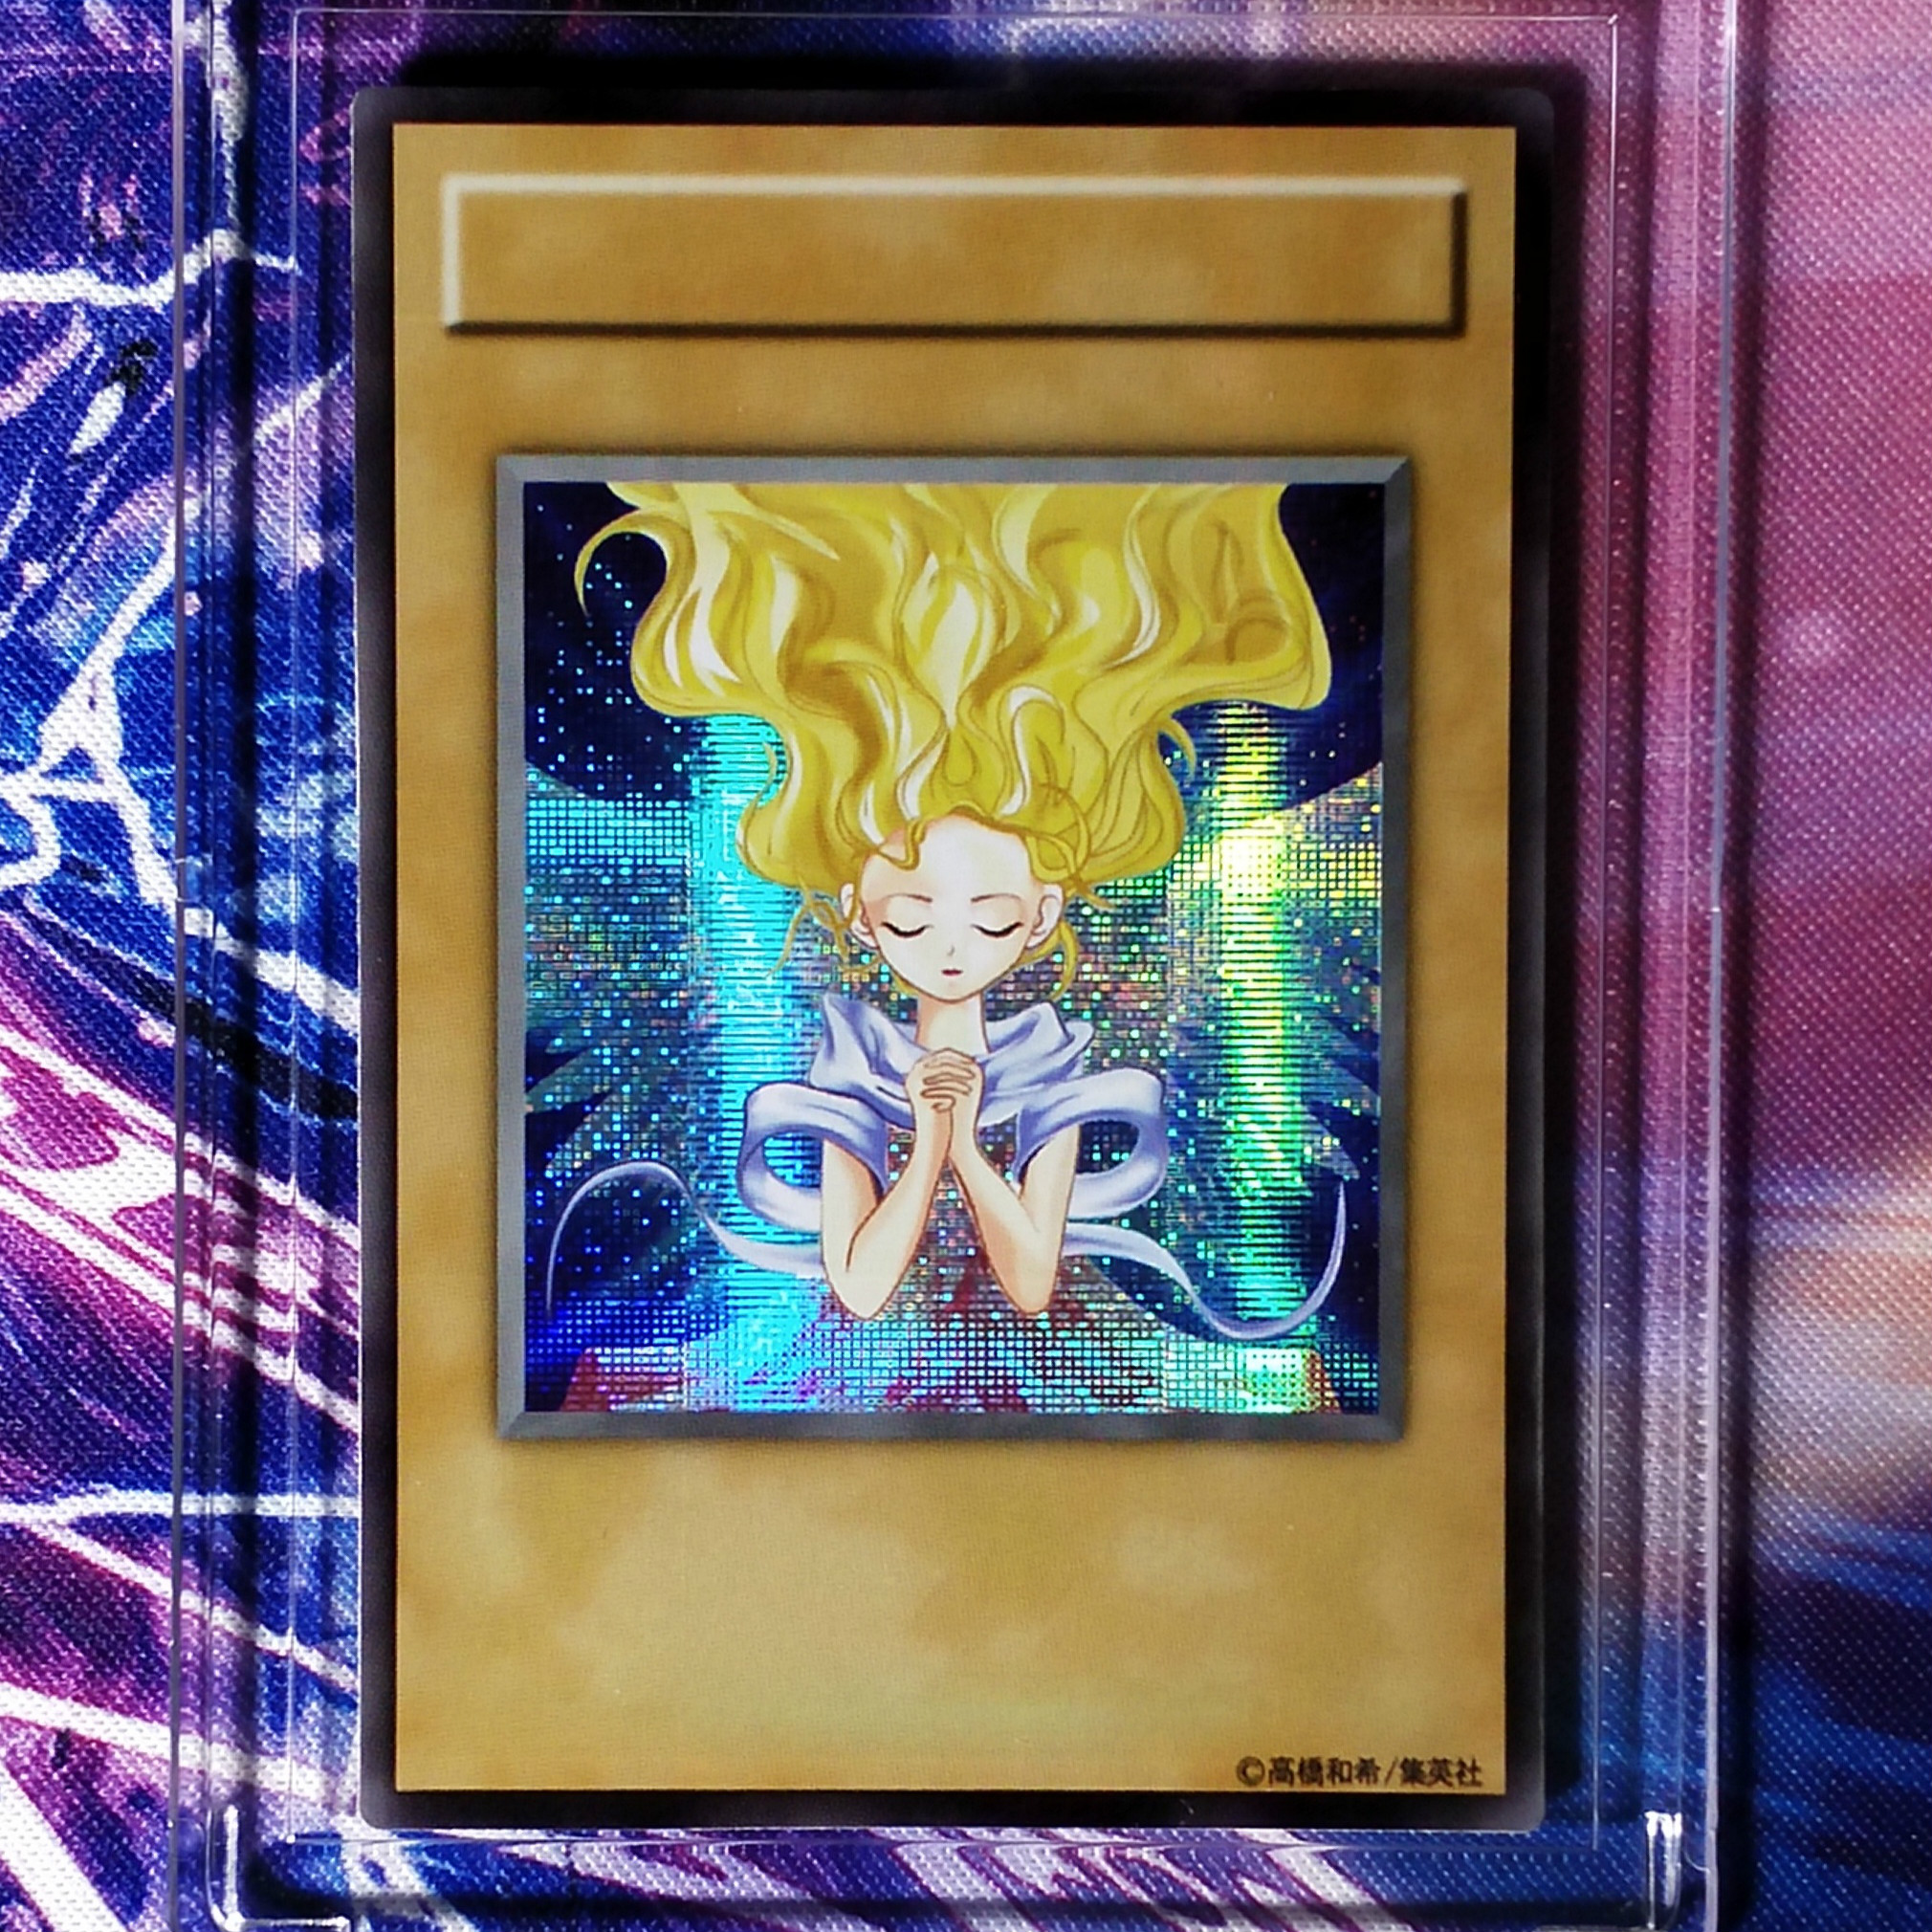 Yu Gi Oh Early Love Edition Rebecca Hawkins DIY Colorful Toys Hobbies Hobby Collectibles Game Collection Anime Cards